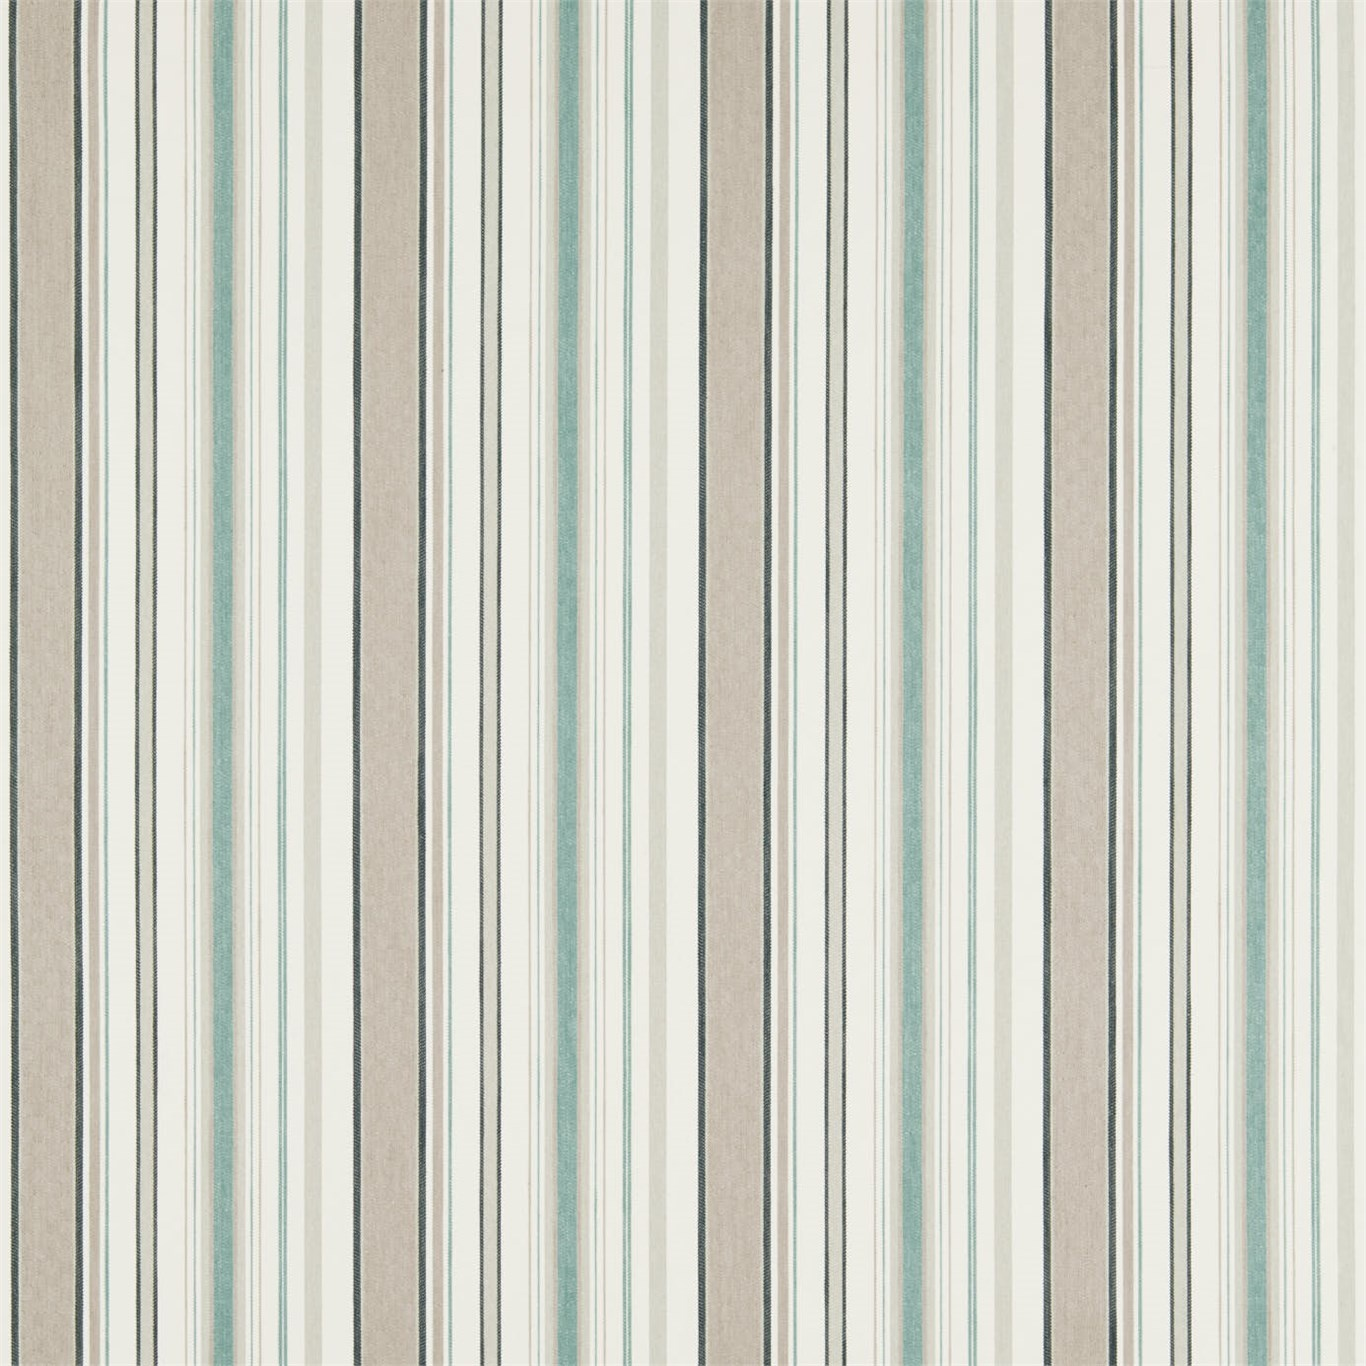 Image of Sanderson Home Dobby Stripe Winter Rocket Curtain Fabric 235899